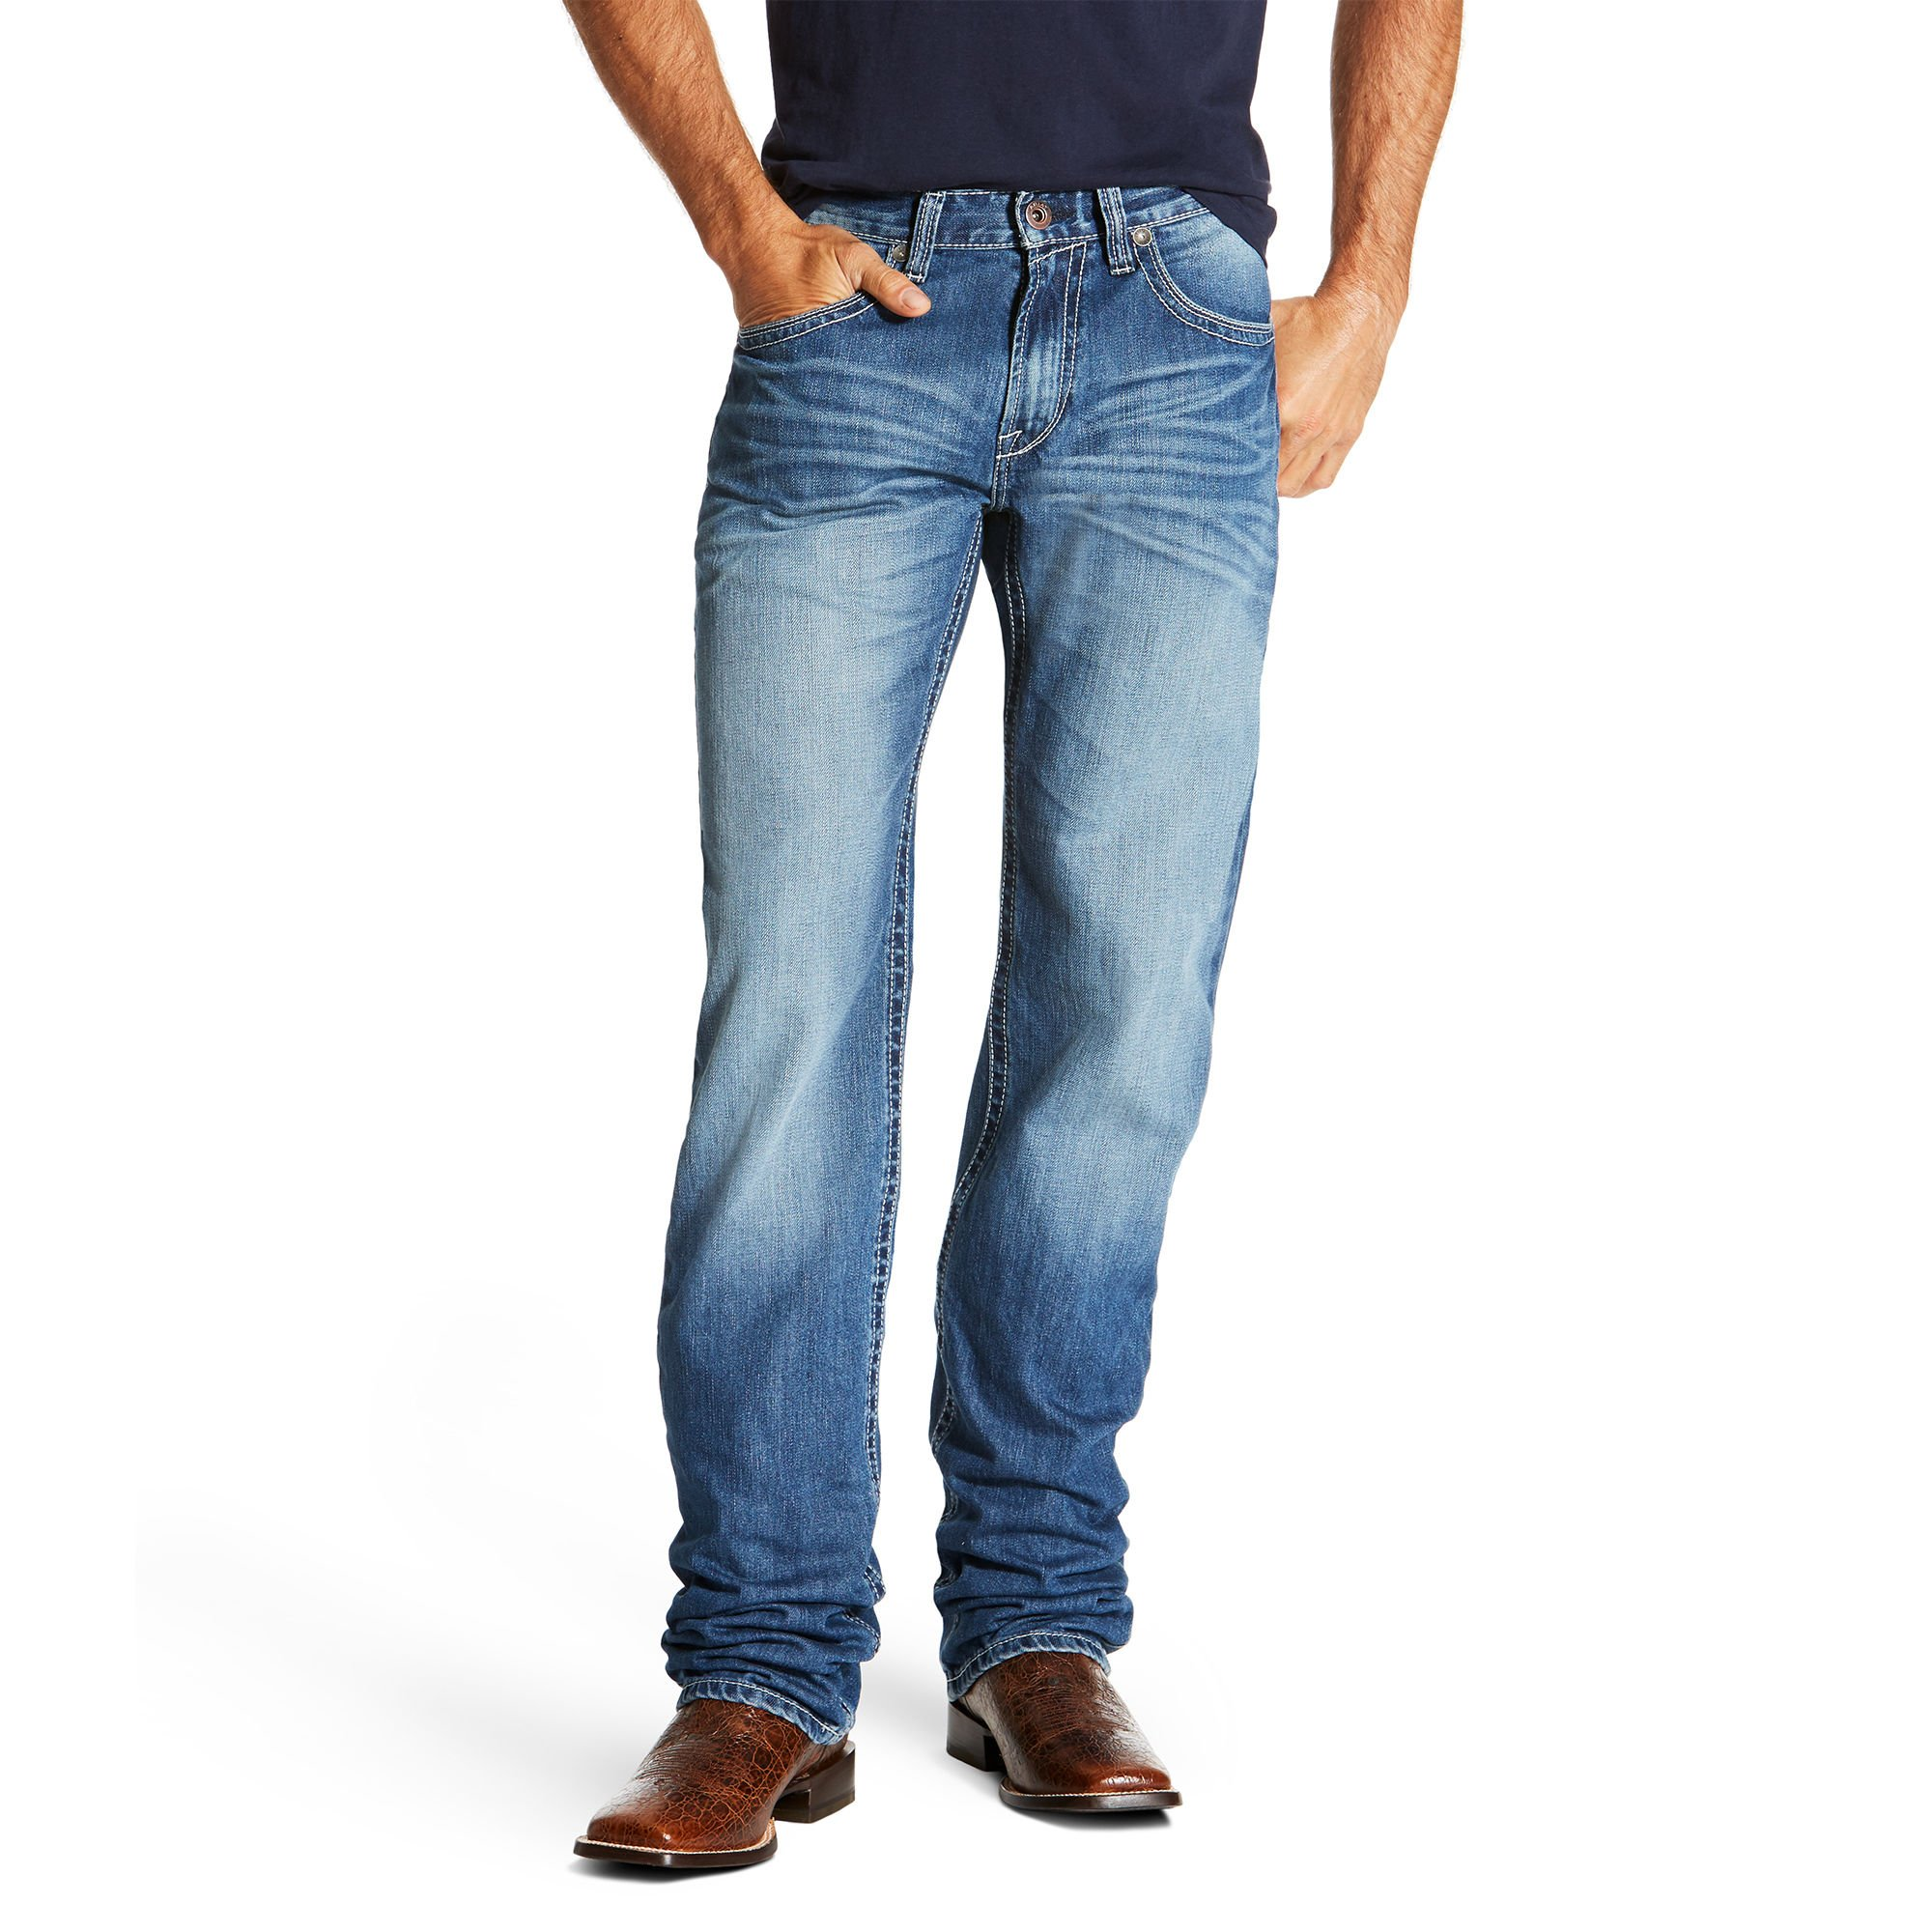 Ariat Men's M2 Relaxed Fit Jean, Cody Midway, 30X32